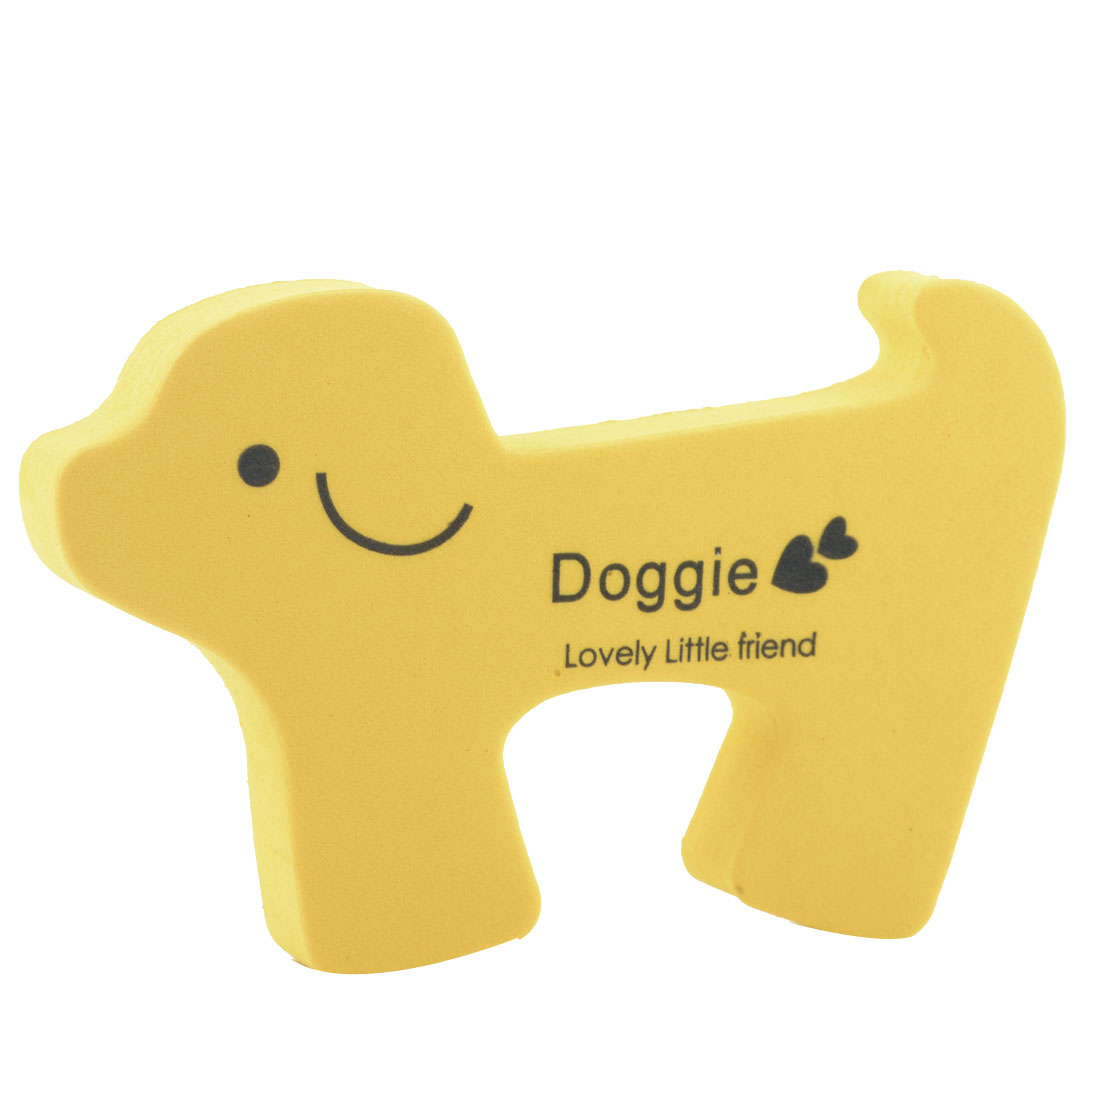 EVA Yellow Doggie Shape Finger Protector Safety Guard Doorstop Door Stopper Lock